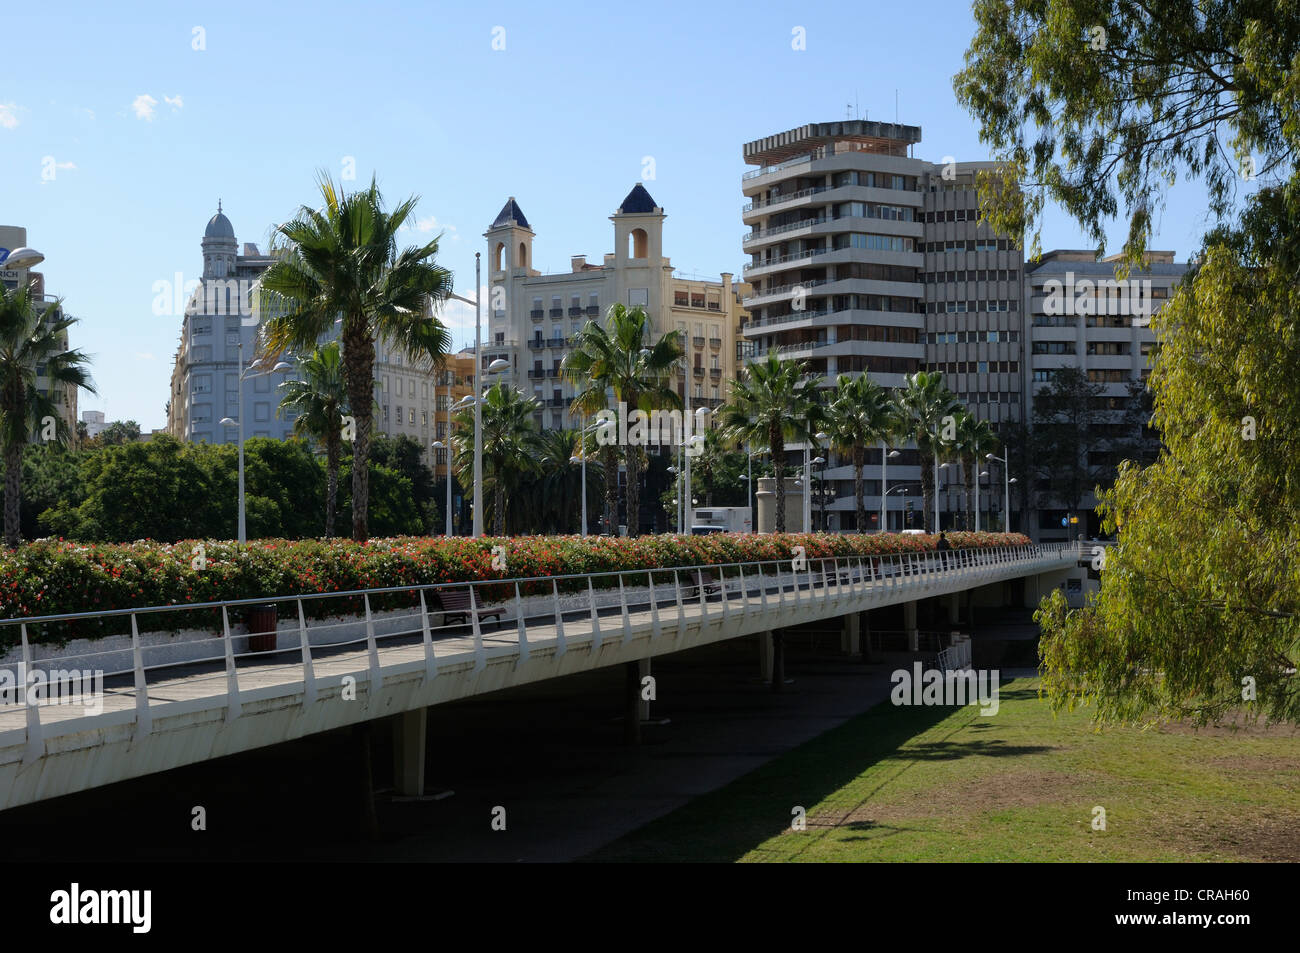 Puente de las Flores bridge, Valencia, Spain, Europe Stock Photo